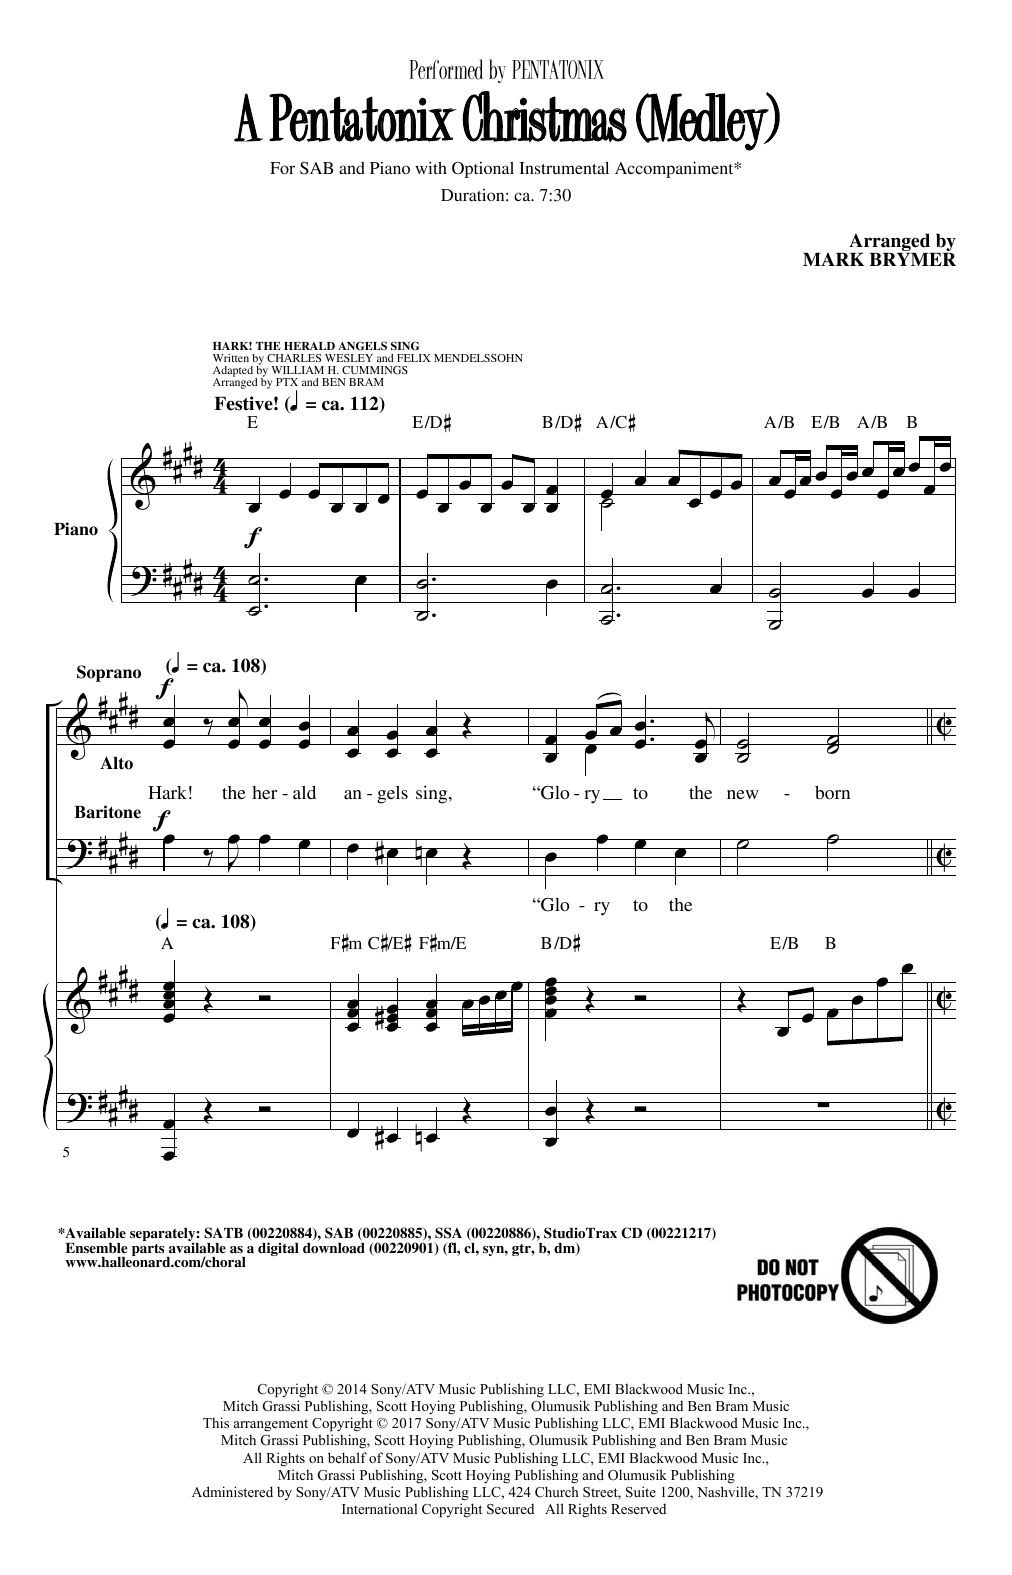 Pentatonix Hark! The Herald Angels Sing (arr. Mark Brymer) sheet music notes and chords. Download Printable PDF.